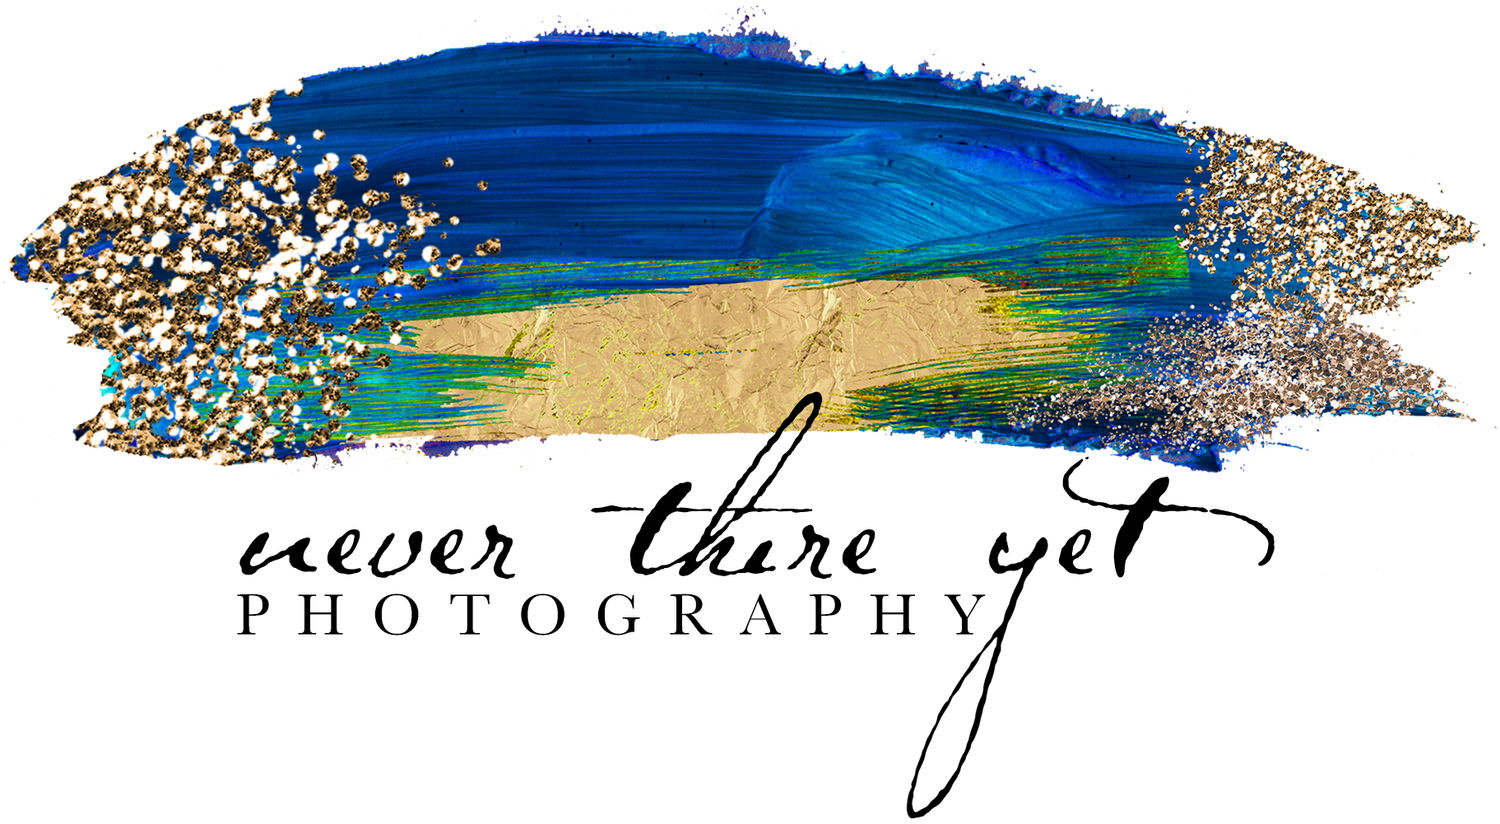 never there yet photography